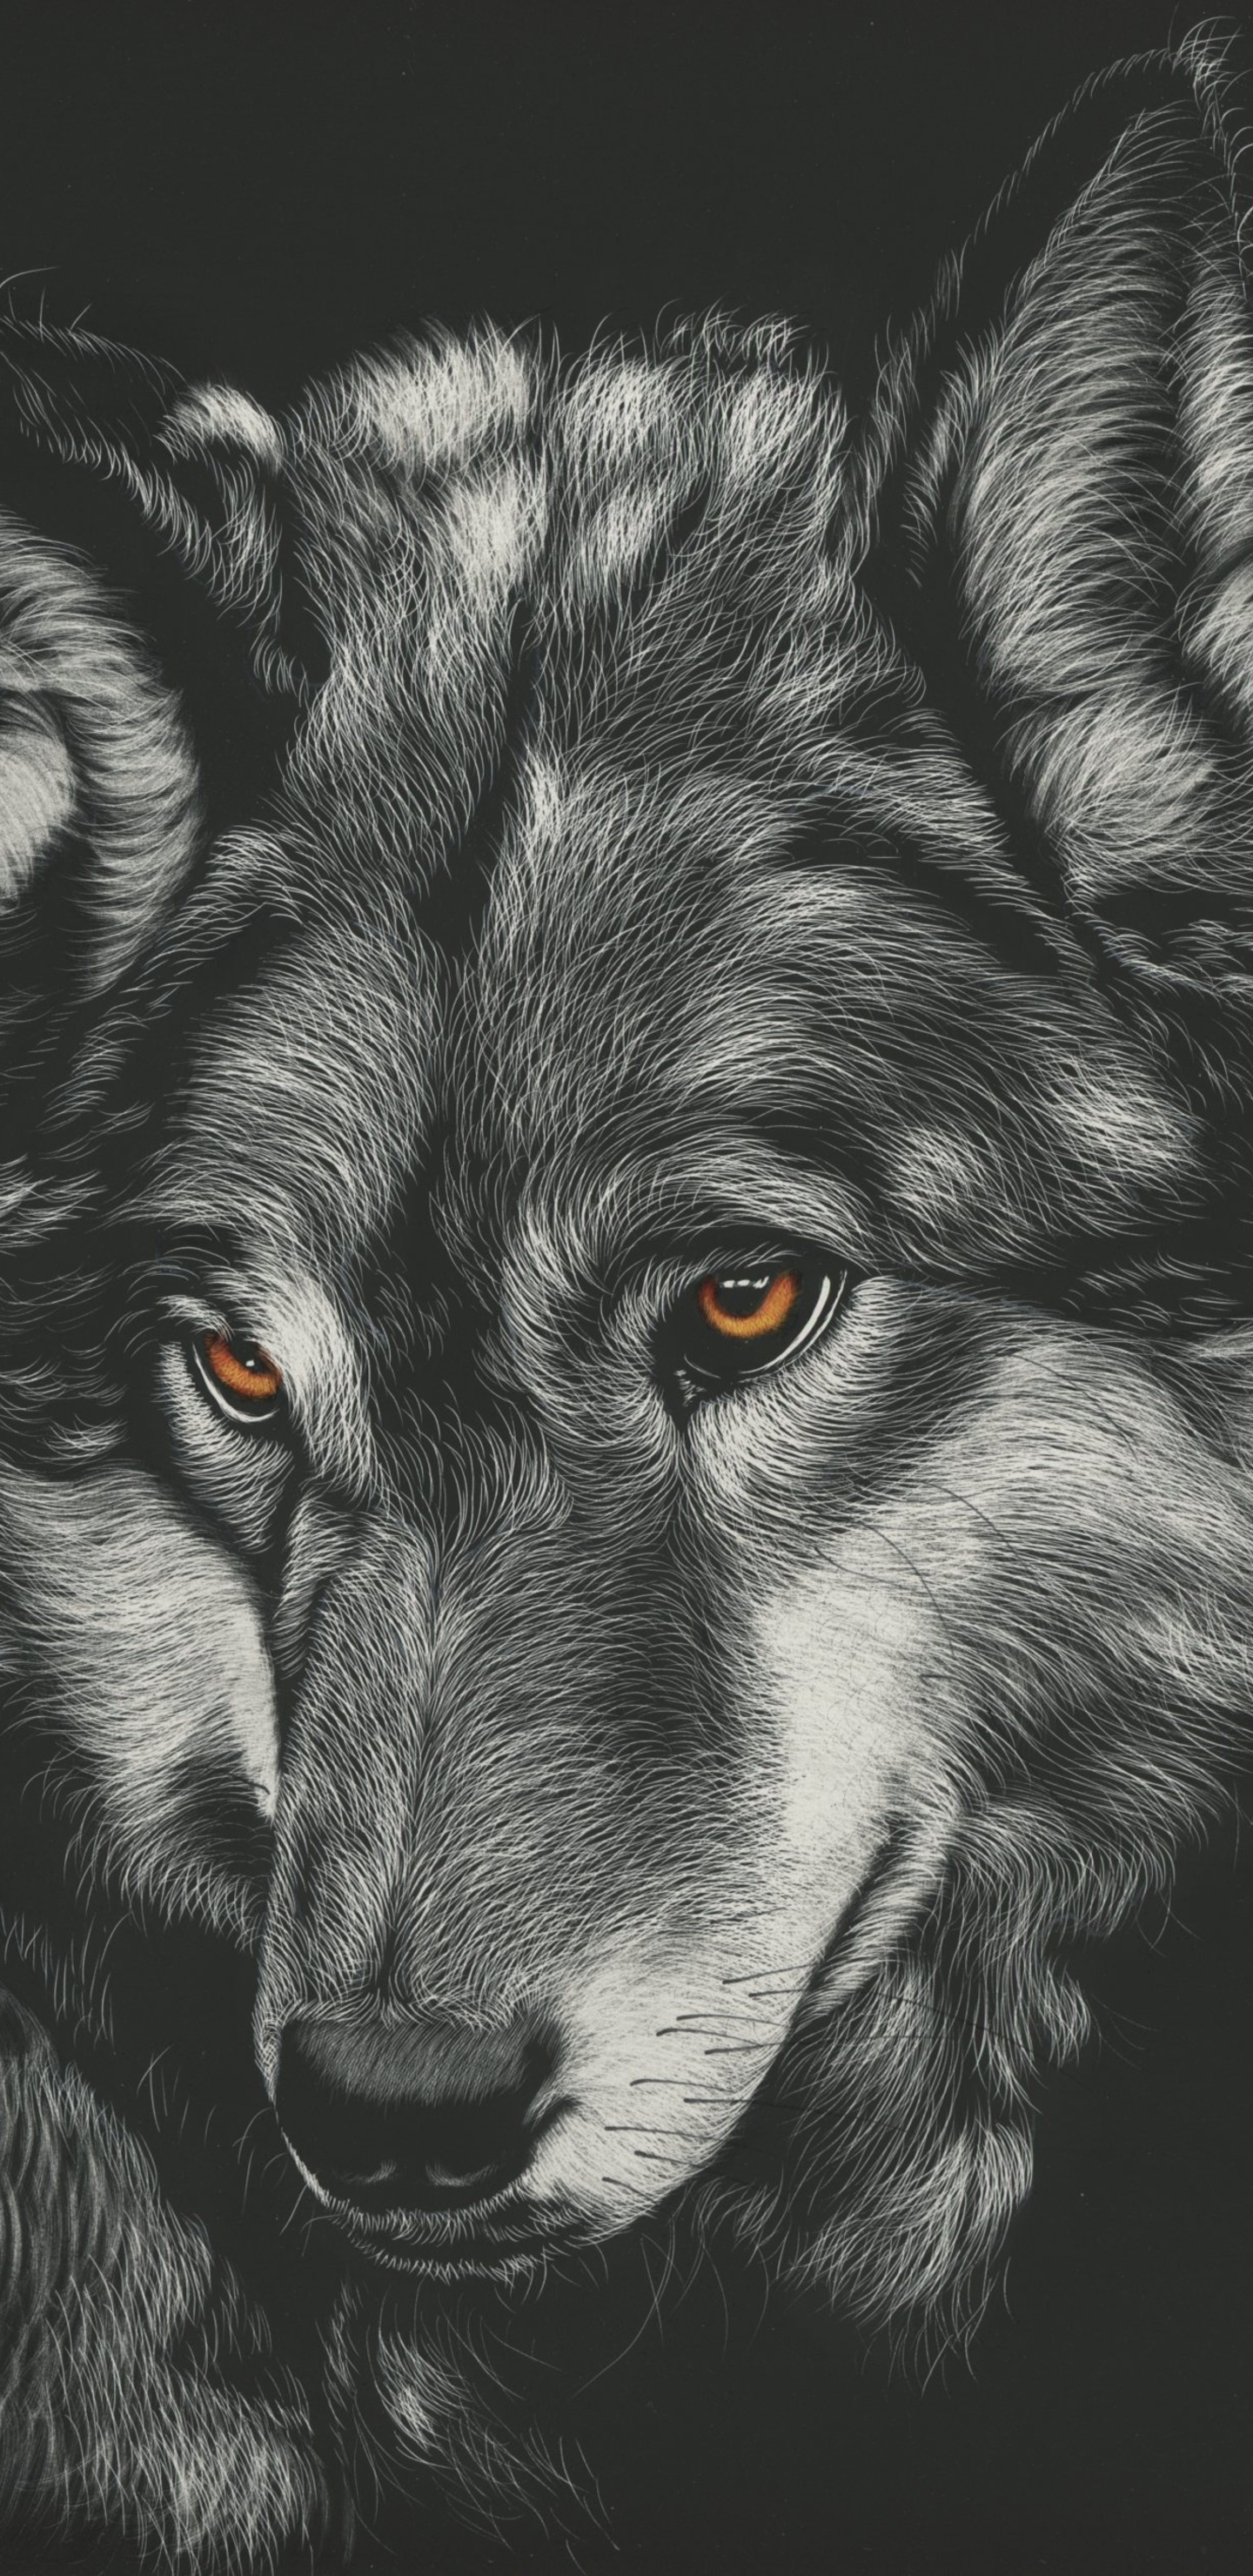 1440x2960 Wolf Painting 4k Samsung Galaxy Note 9 8 S9 S8 S8 Qhd Hd